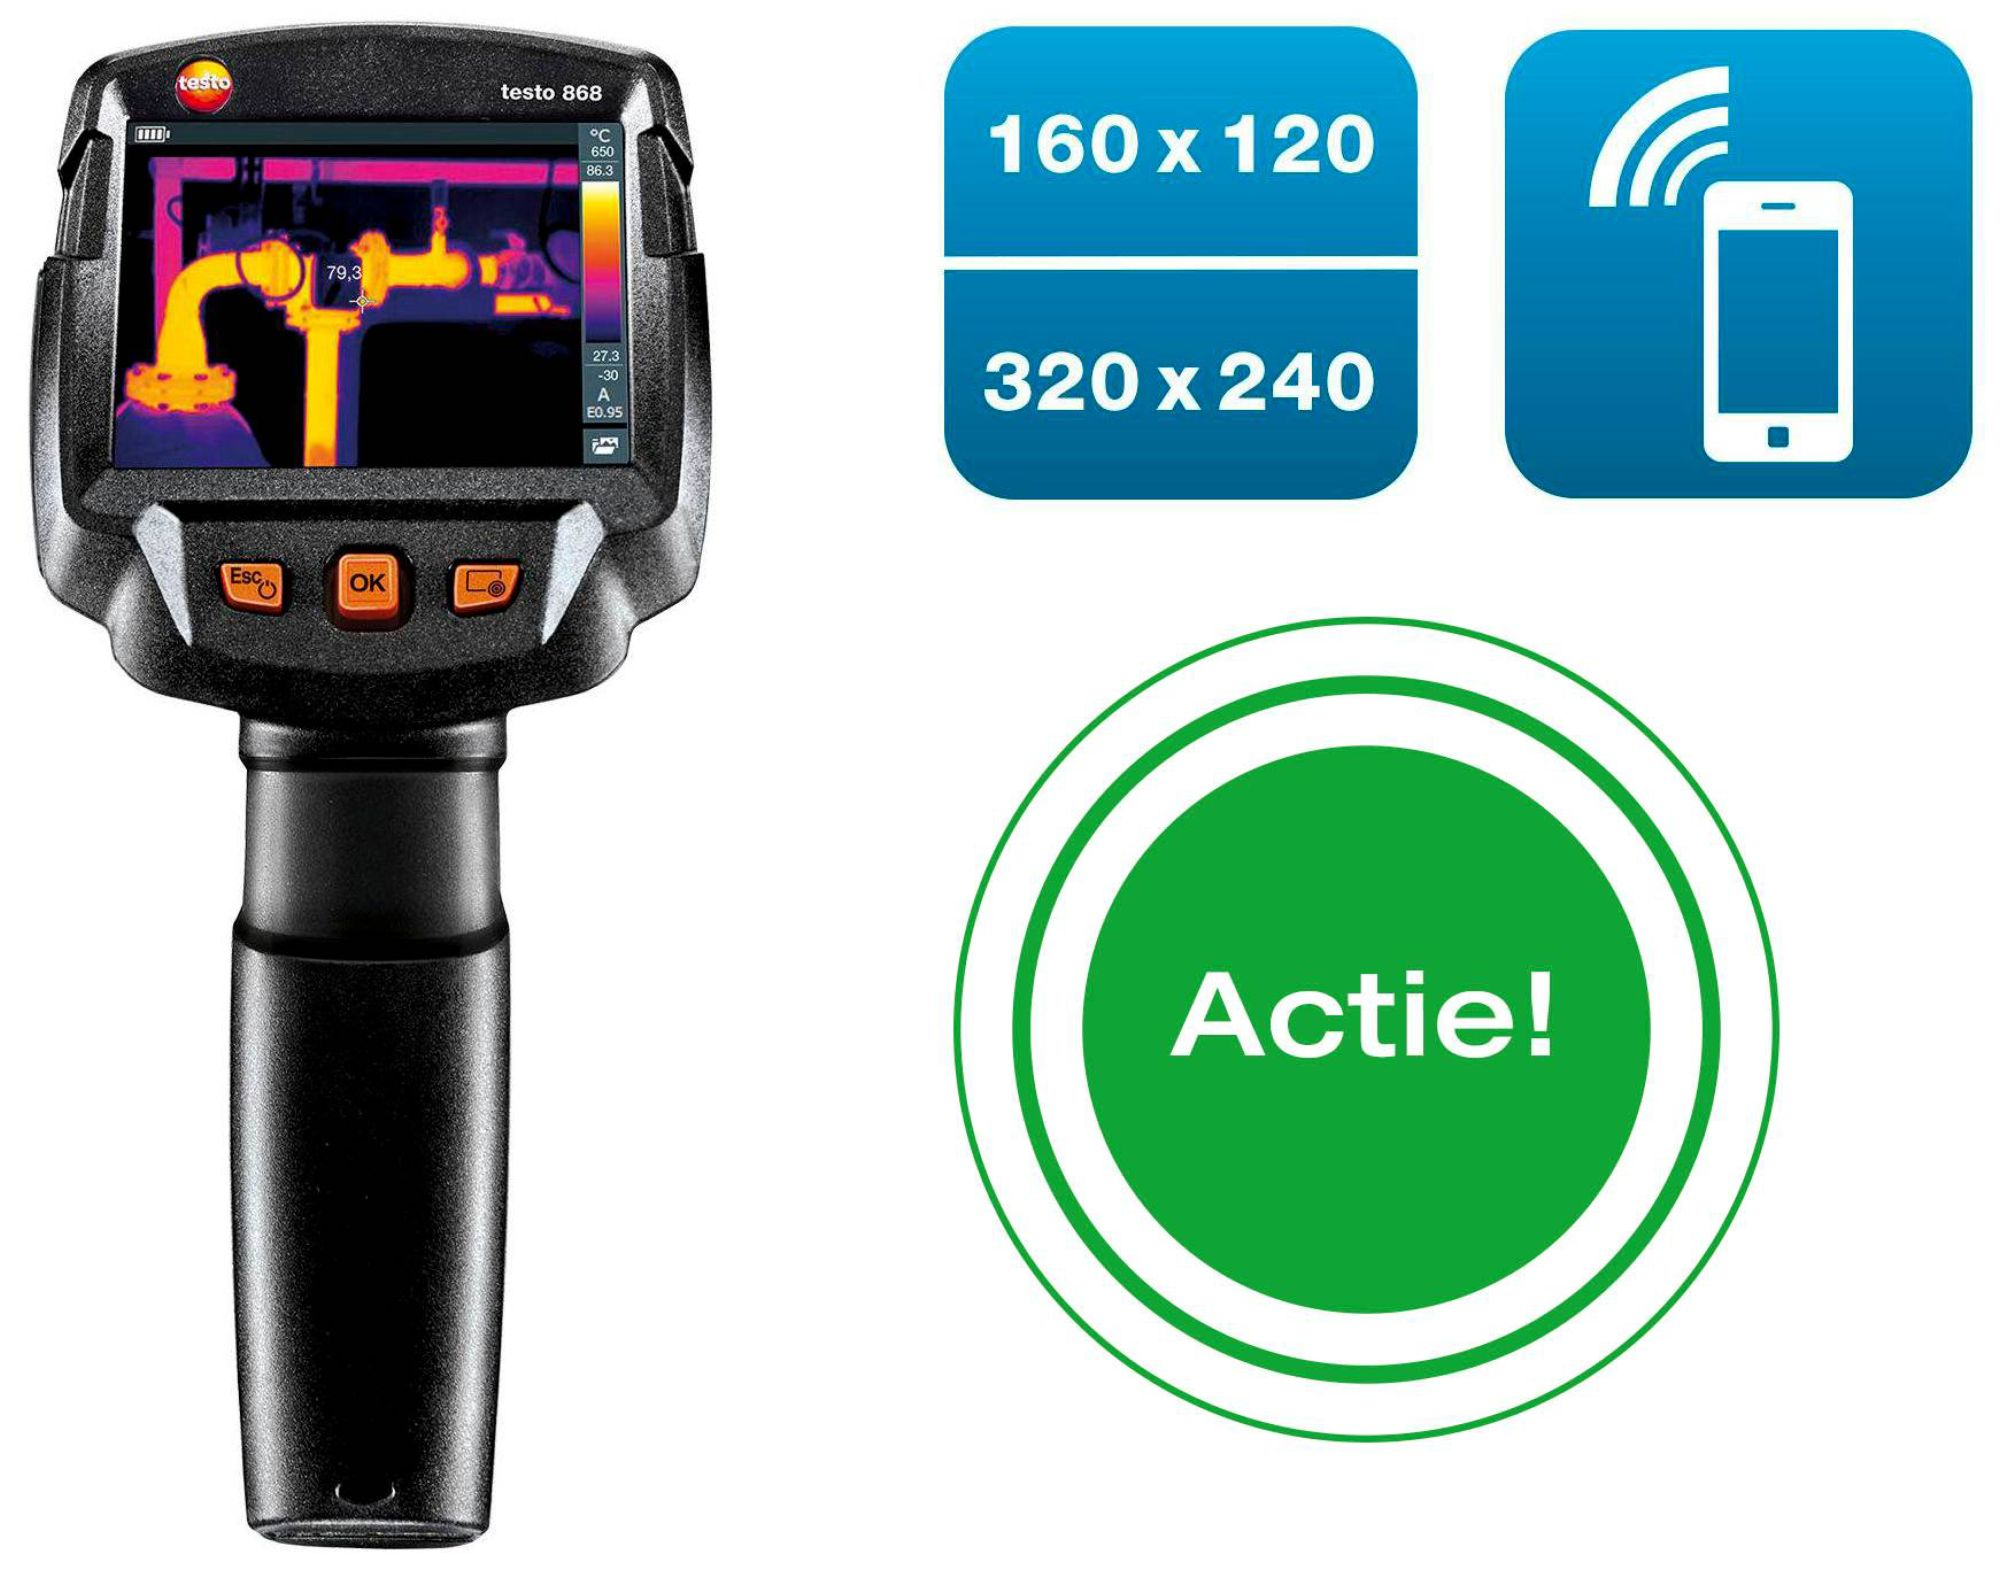 Promo offer themal imager testo 868